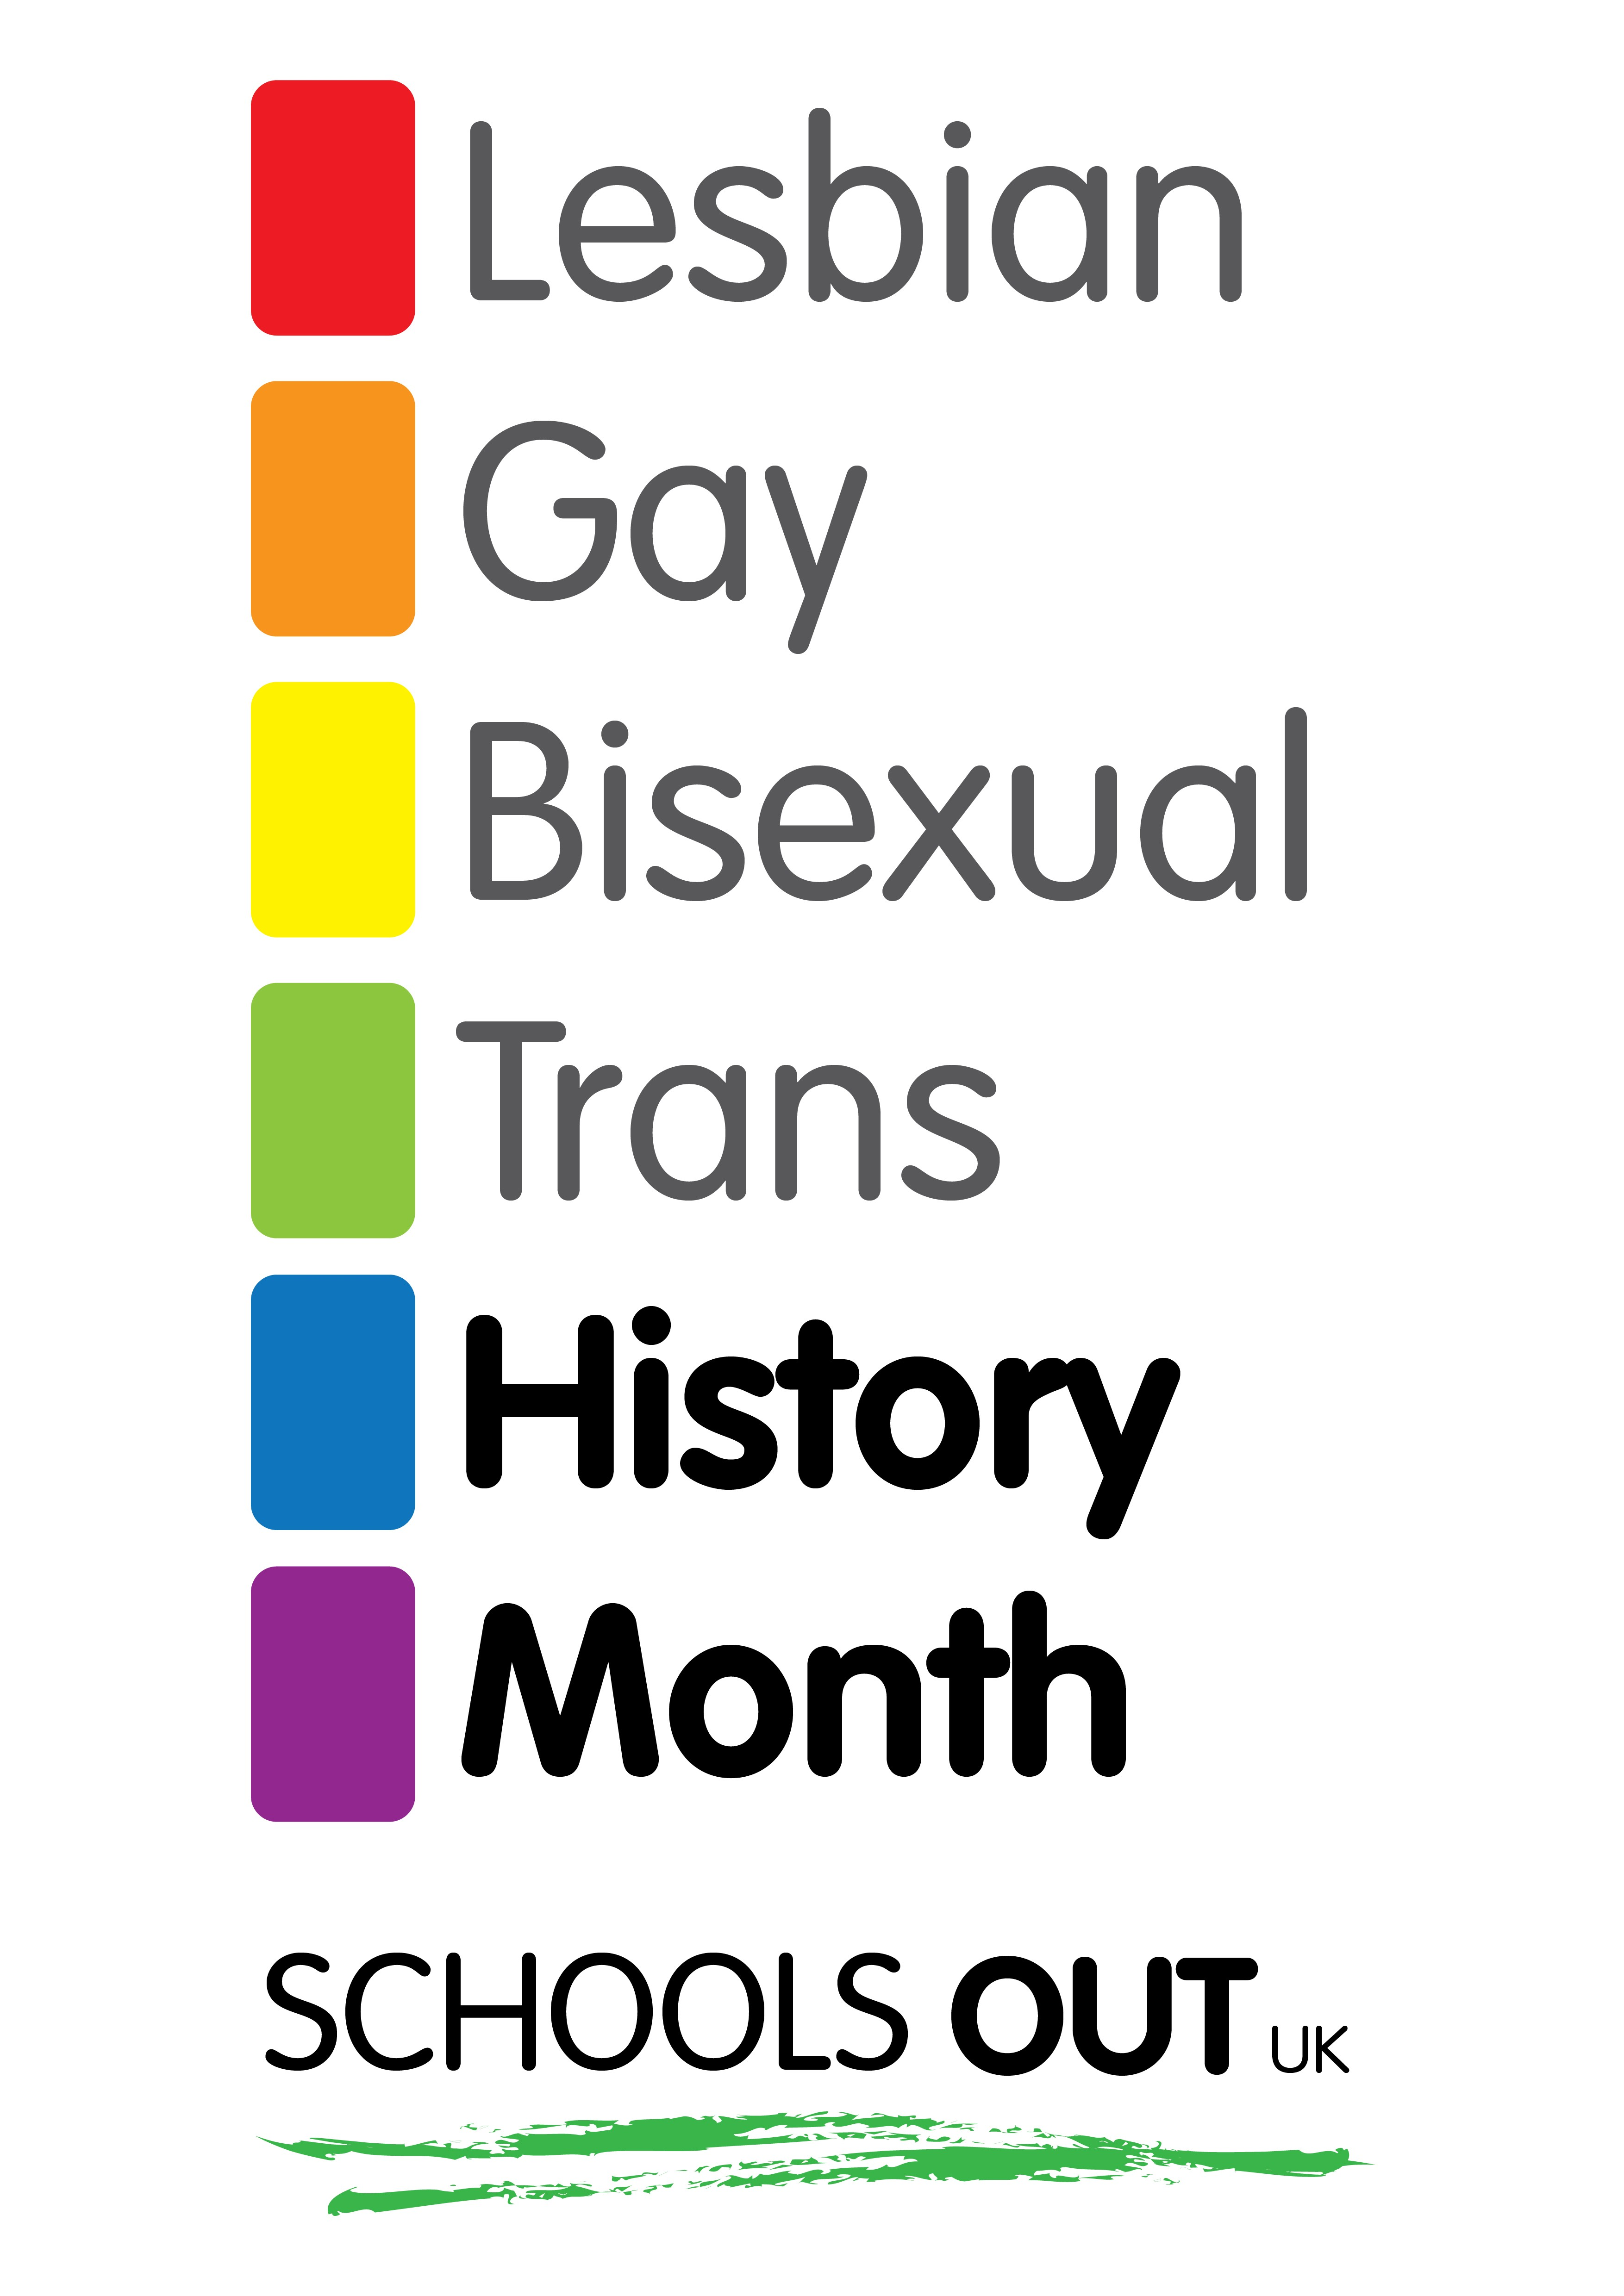 March Reading Month Calendar Activities Recientes Lgbt History Month Resources Of March Reading Month Calendar Activities Más Caliente Calendar Of events